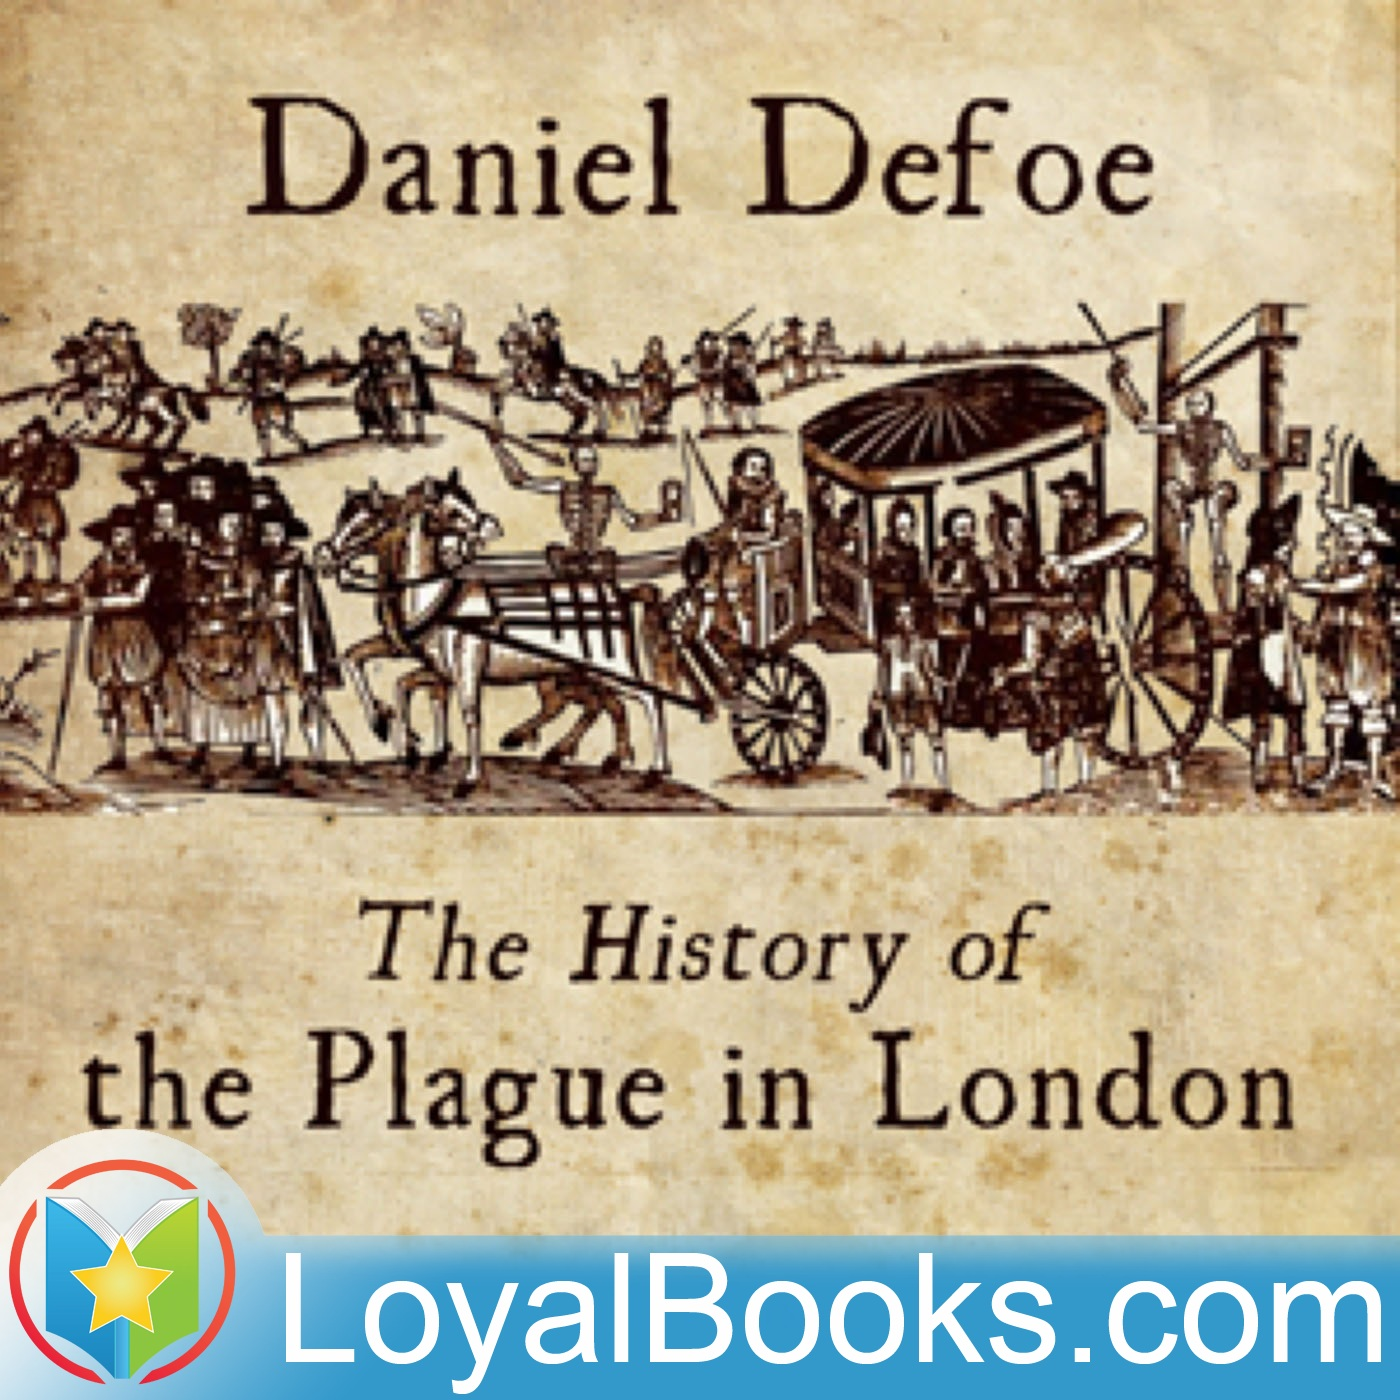 <![CDATA[The History of the Plague in London by Daniel Defoe]]>